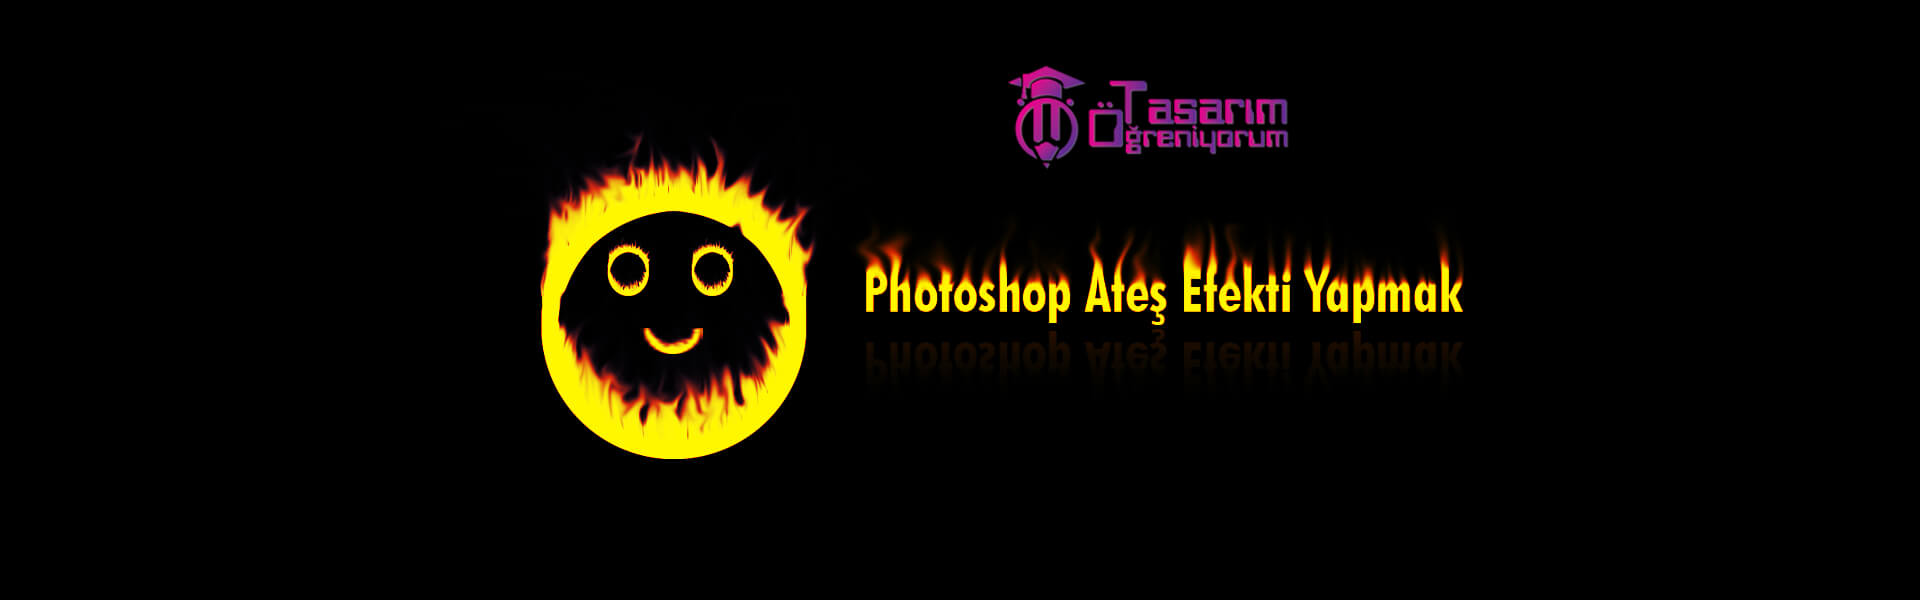 Photo of Photoshop Ateş Efekti Yapmak